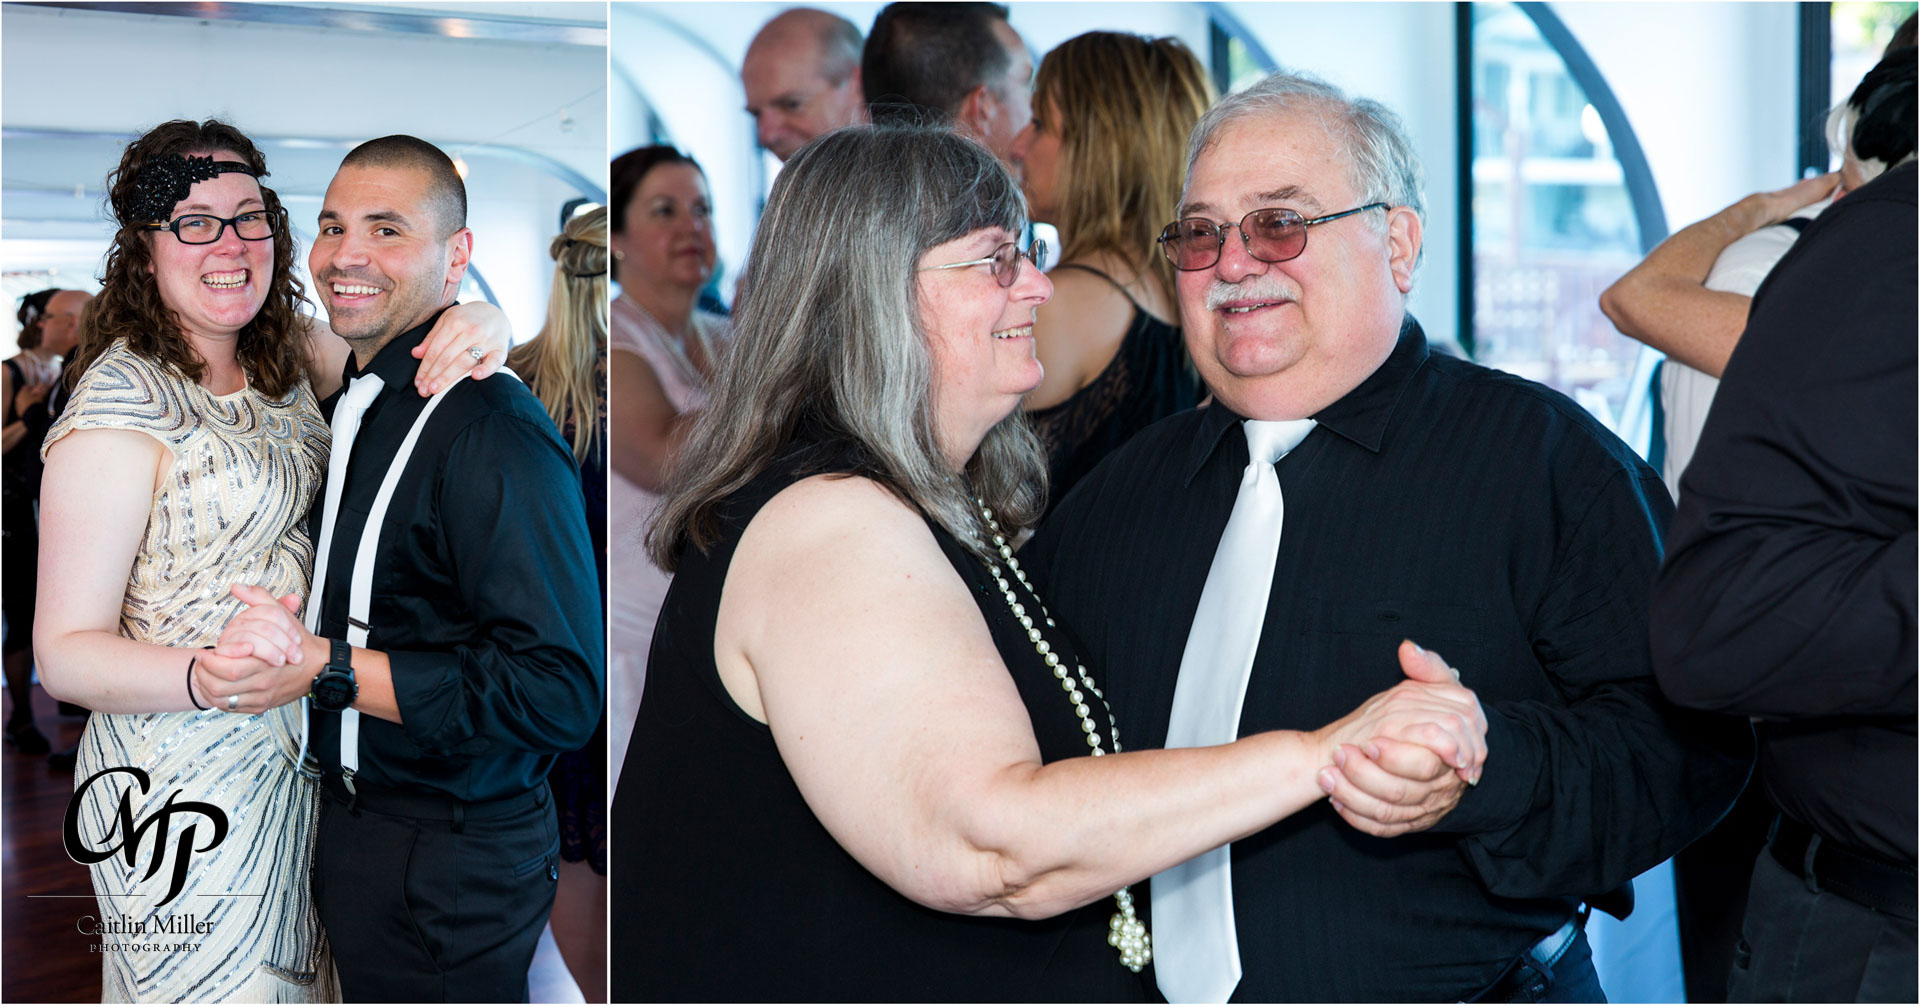 bombard-26.jpg from Jan and Robert's vow renewal on shoreline Cruise's Adirondac Boat on Lake George, NY by Saratoga Wedding Photographer Caitlin Miller Photography. Lake George Wedding Photographer. Stamford wedding photographer. Albany wedding photographer. Shoreline Cruises Wedding Photographer. Saratoga Wedding Photographer